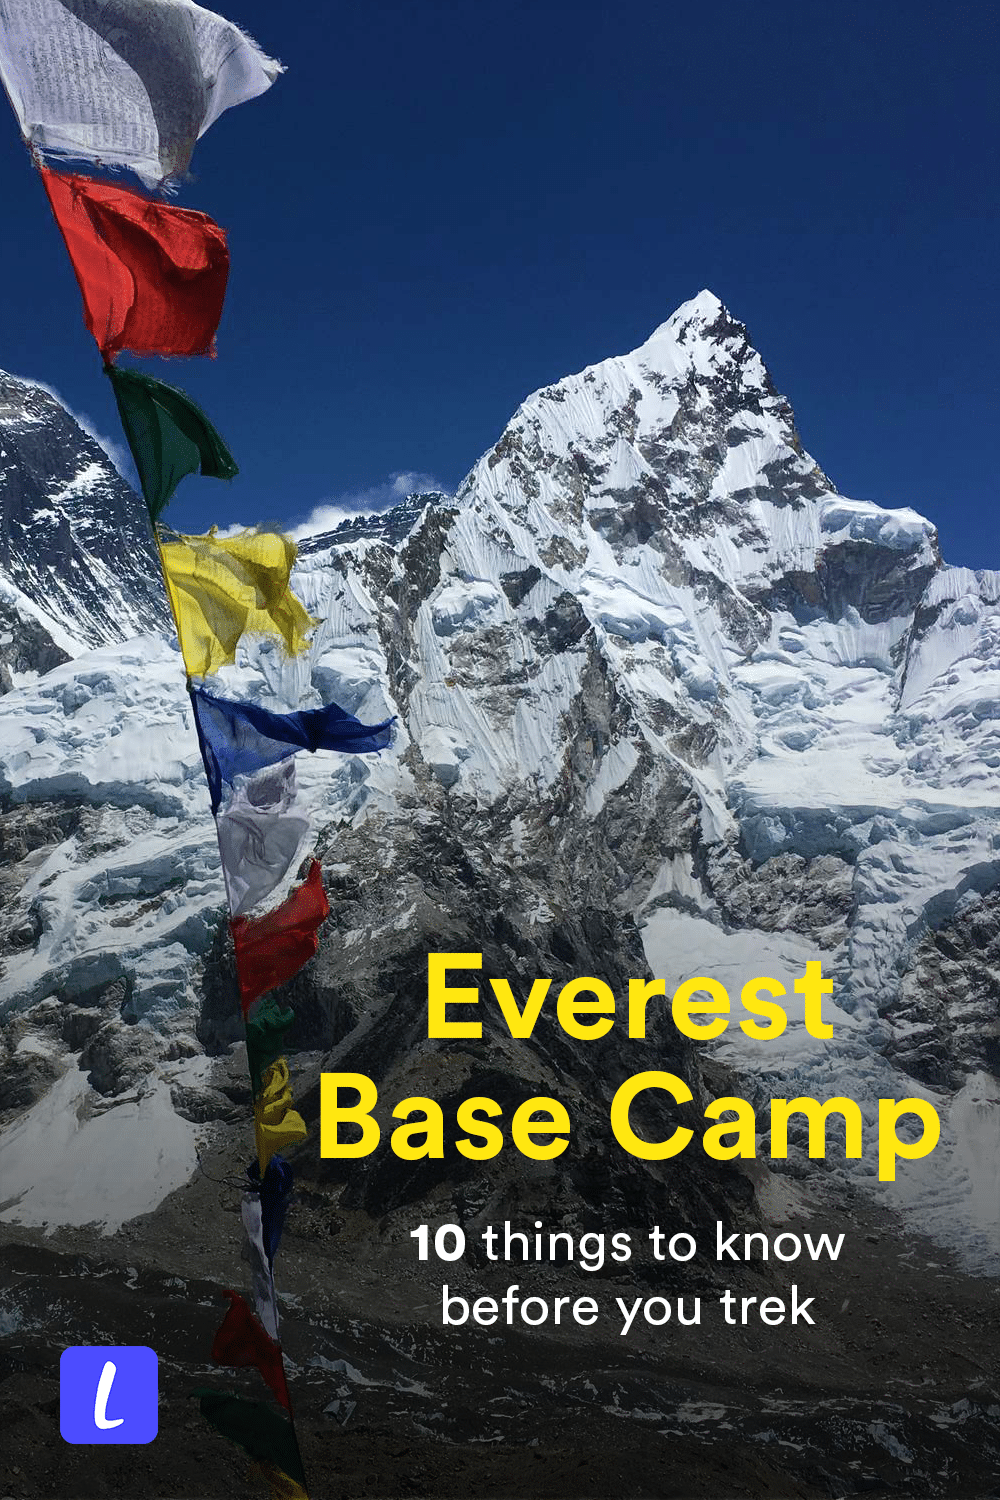 Hiking the Everest Base Camp trail in Nepal? Here's what you should know before you go, including best place to start the EBC trek, what to pack for Everest Base Camp trekking, how to hire a guide for the EBC, and more.